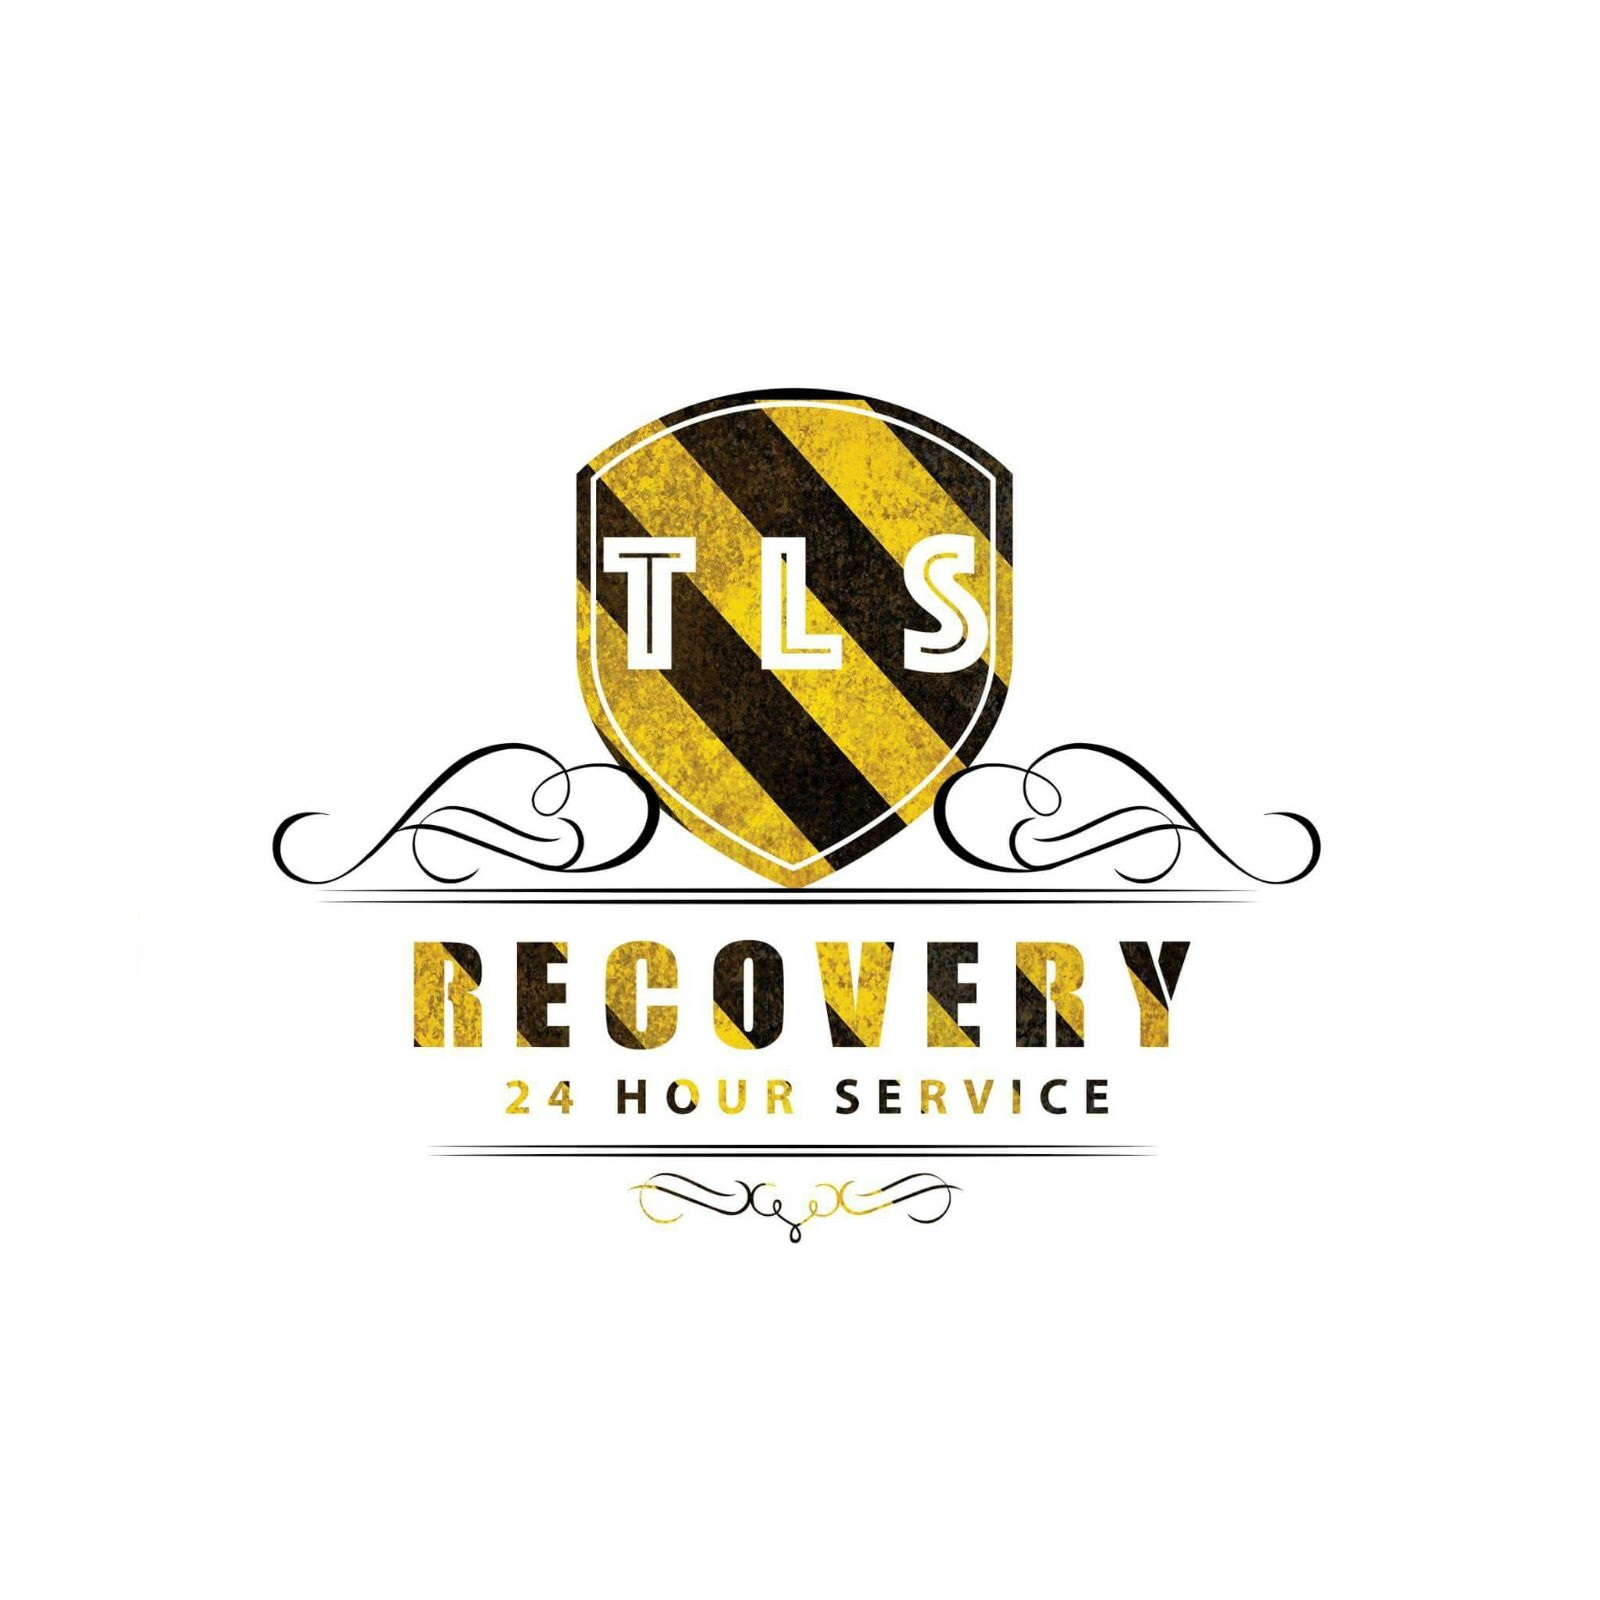 TLS Recovery